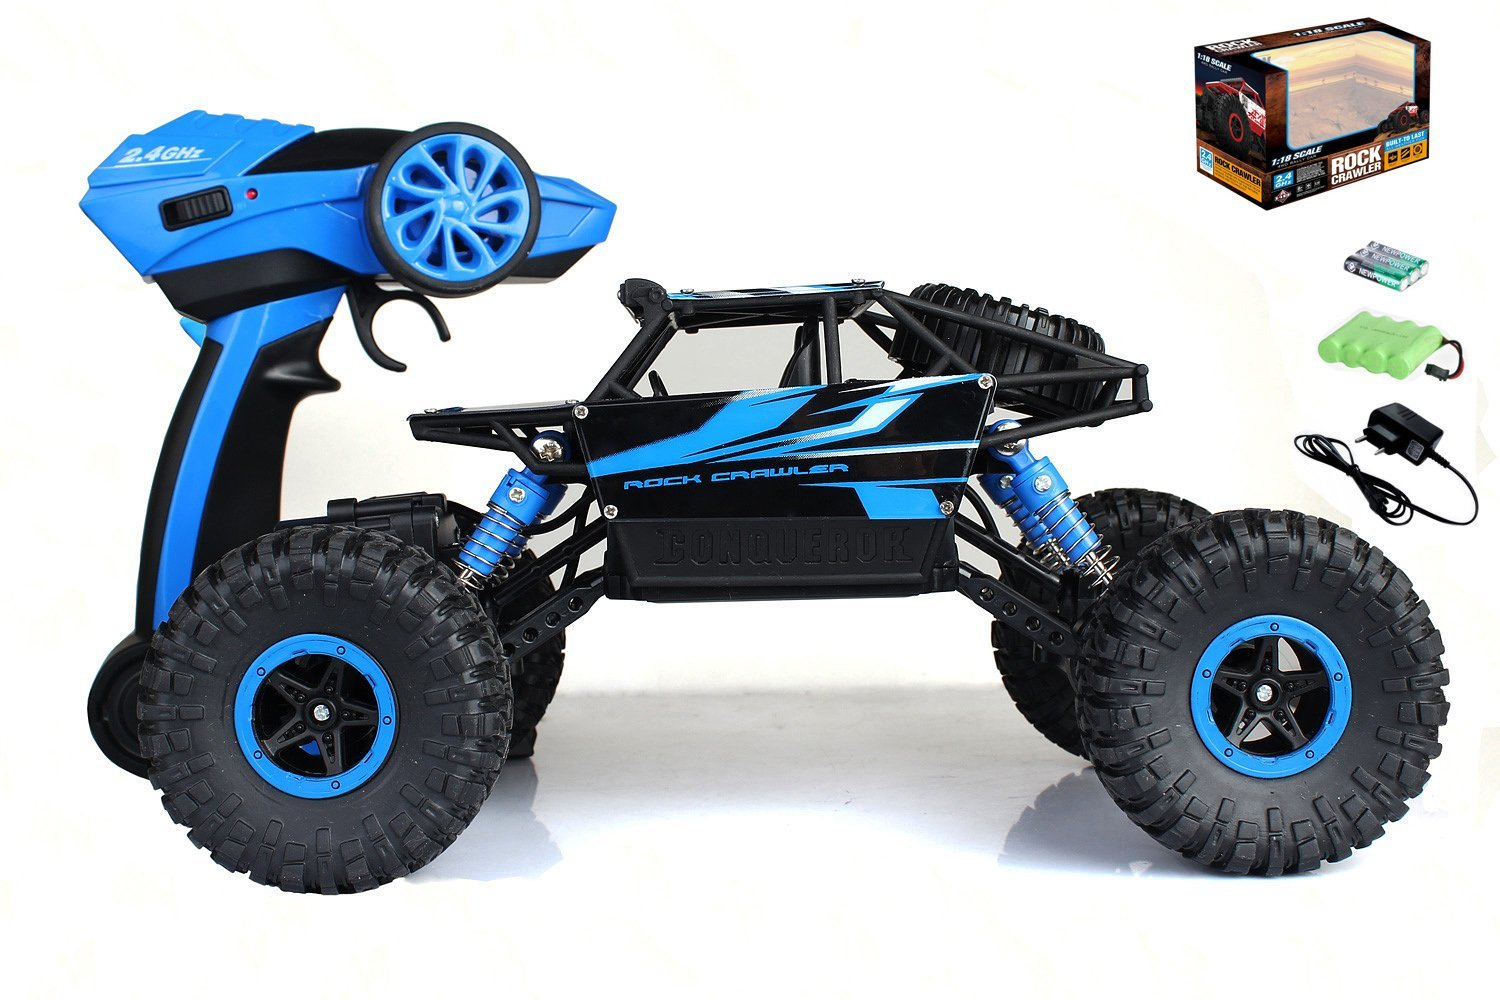 iFixer RC Cars Off-Road Rock Vehicle Crawler 2.4Ghz 4WD High Speed 1:14 Radio Remote Control Racing Cars Electric Fast Race Buggy Hobby Car Black